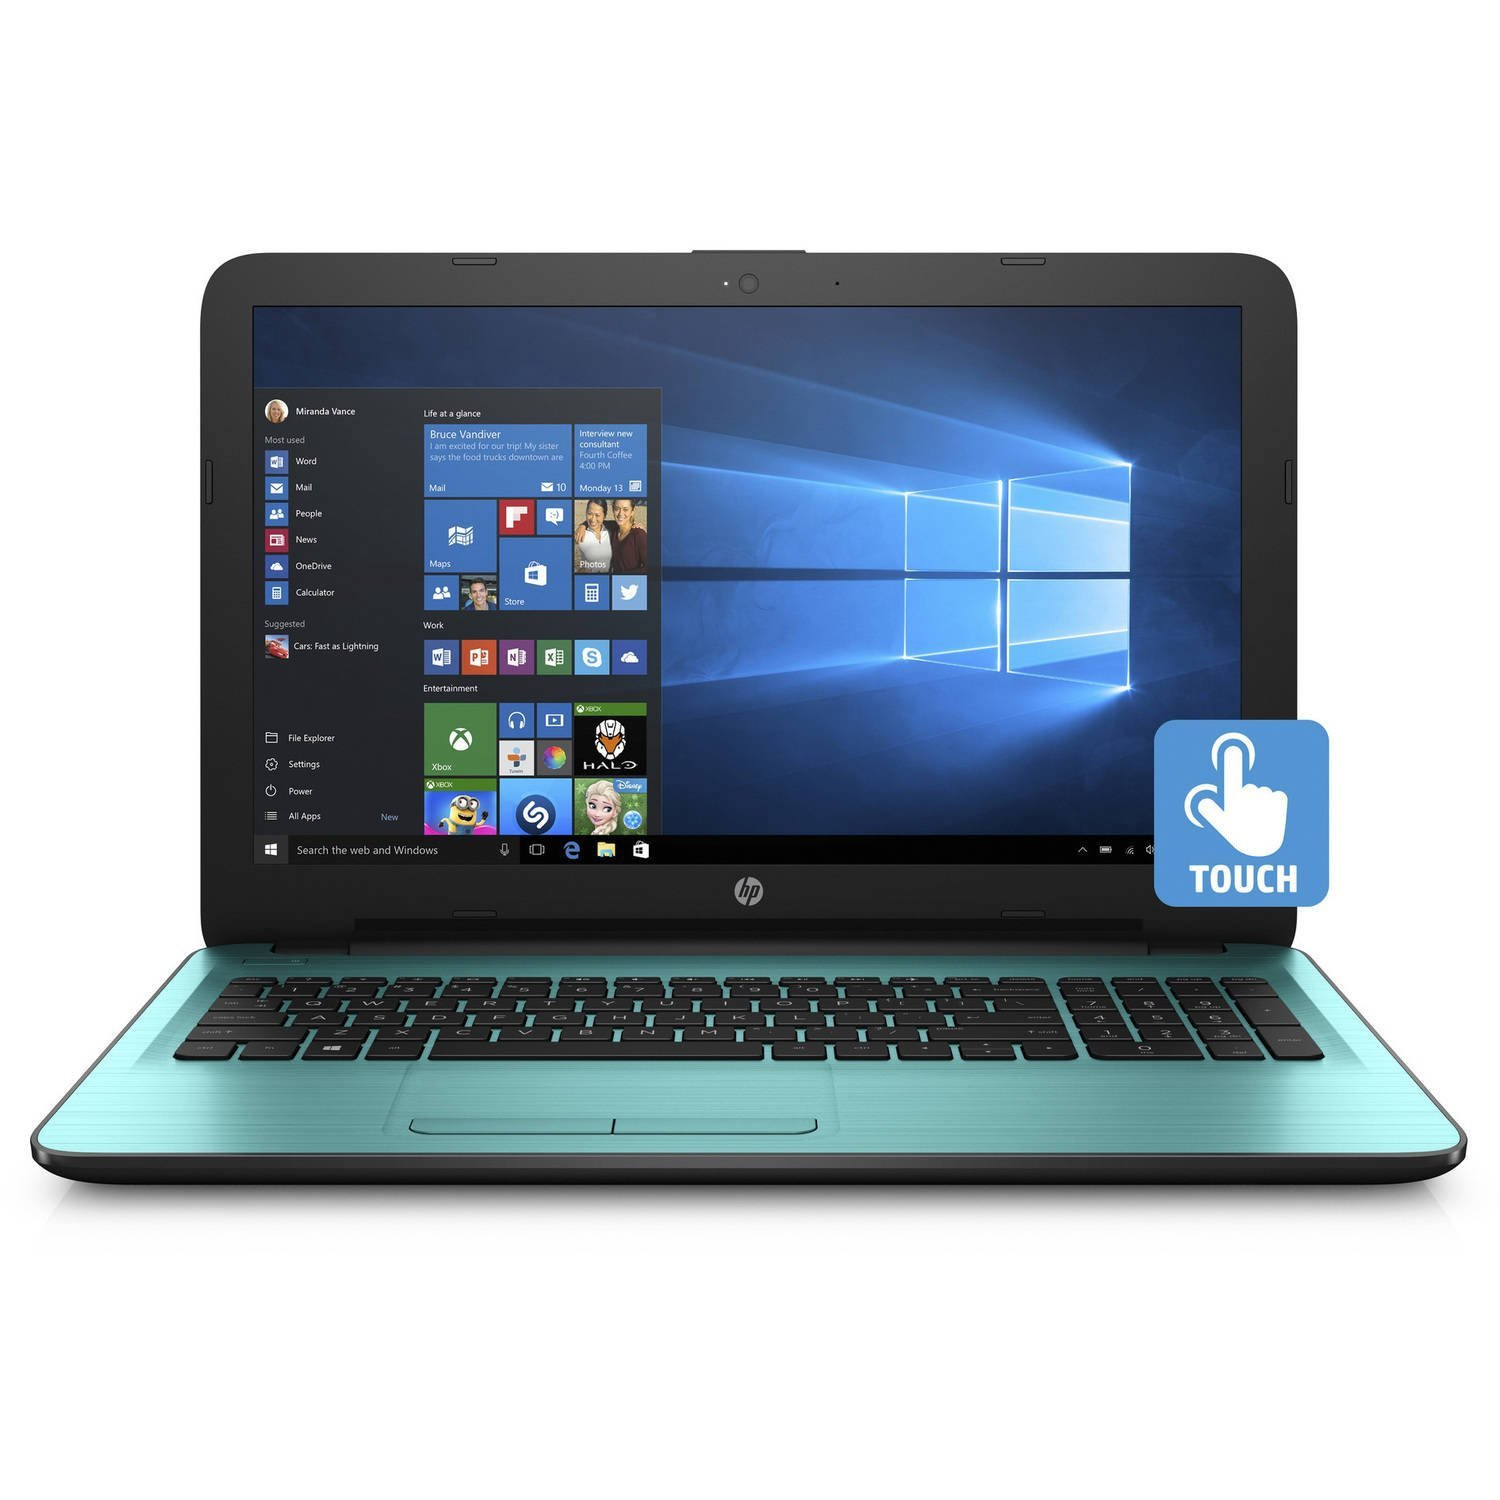 "New Flagship HP Laptop 15.6"" HD High Performance Premium Touchscreen AMD A8-7410 Quad-core 2.20 GHz, 4GB RAM, 1TB HDD, AMD Radeon R5, DVDRW, WLAN, Webcam, USB 3.0, HDMI, Win 10 -Dreamy Teal"